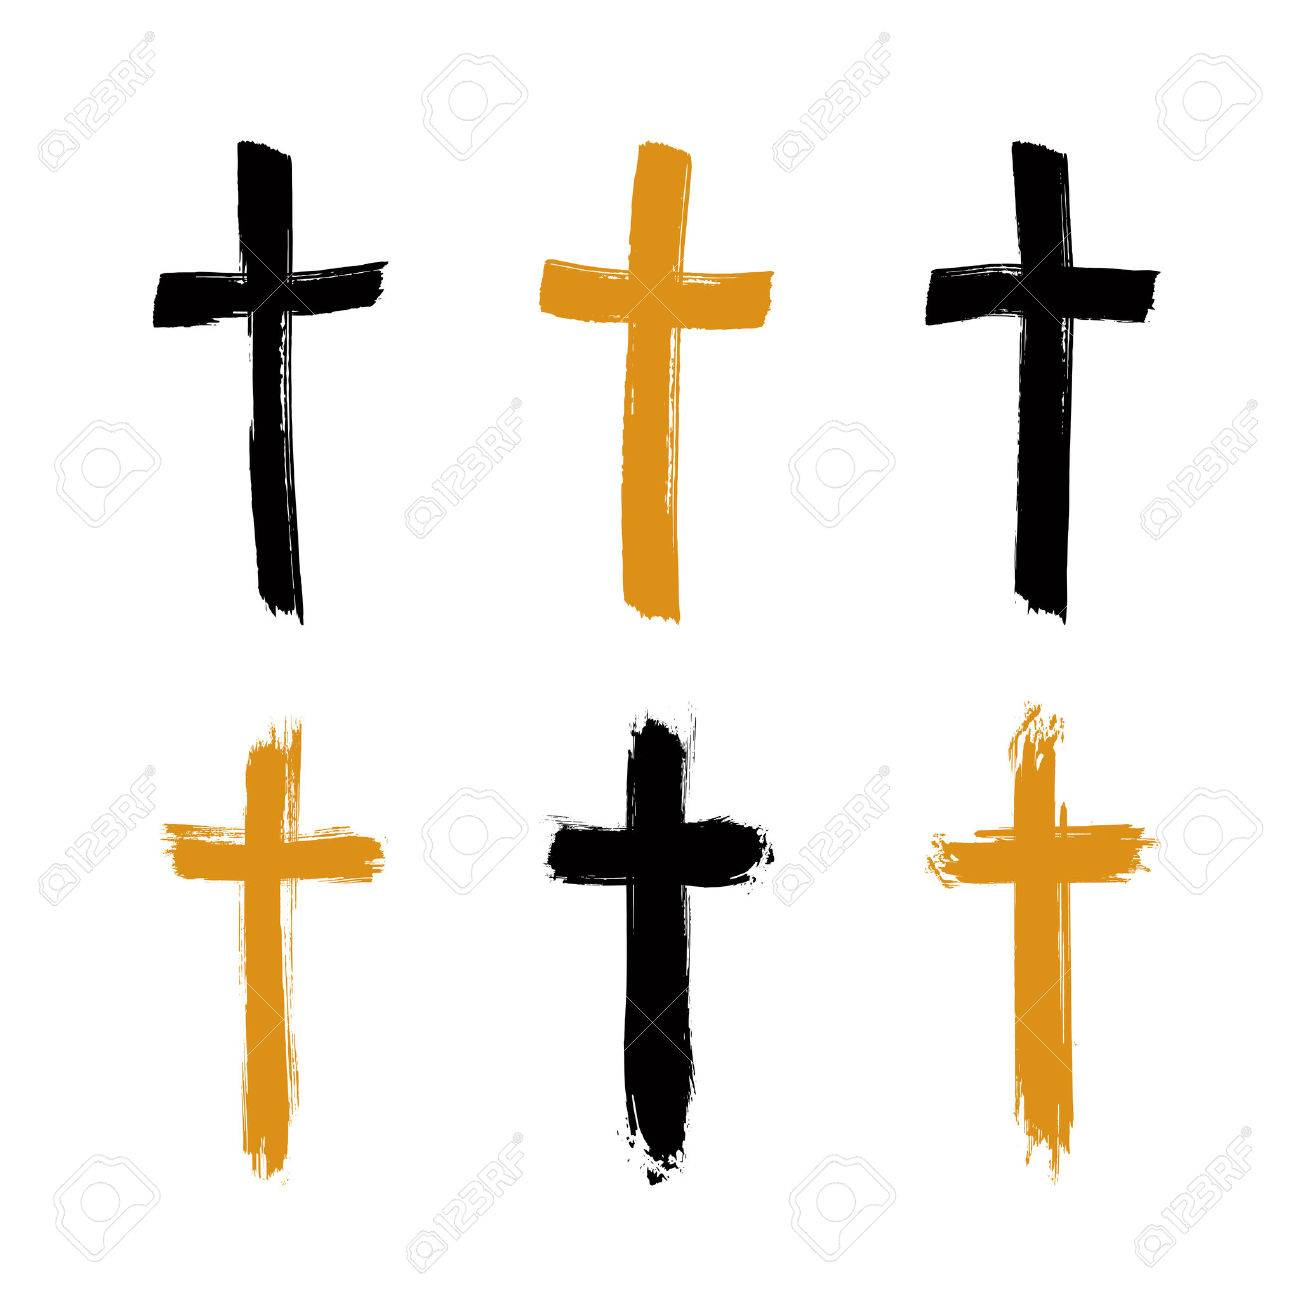 Set of hand-drawn black and yellow grunge cross icons, collection of simple Christian cross signs, hand-painted cross symbols created with real ink brush isolated on white background. Stock Vector - 37792639